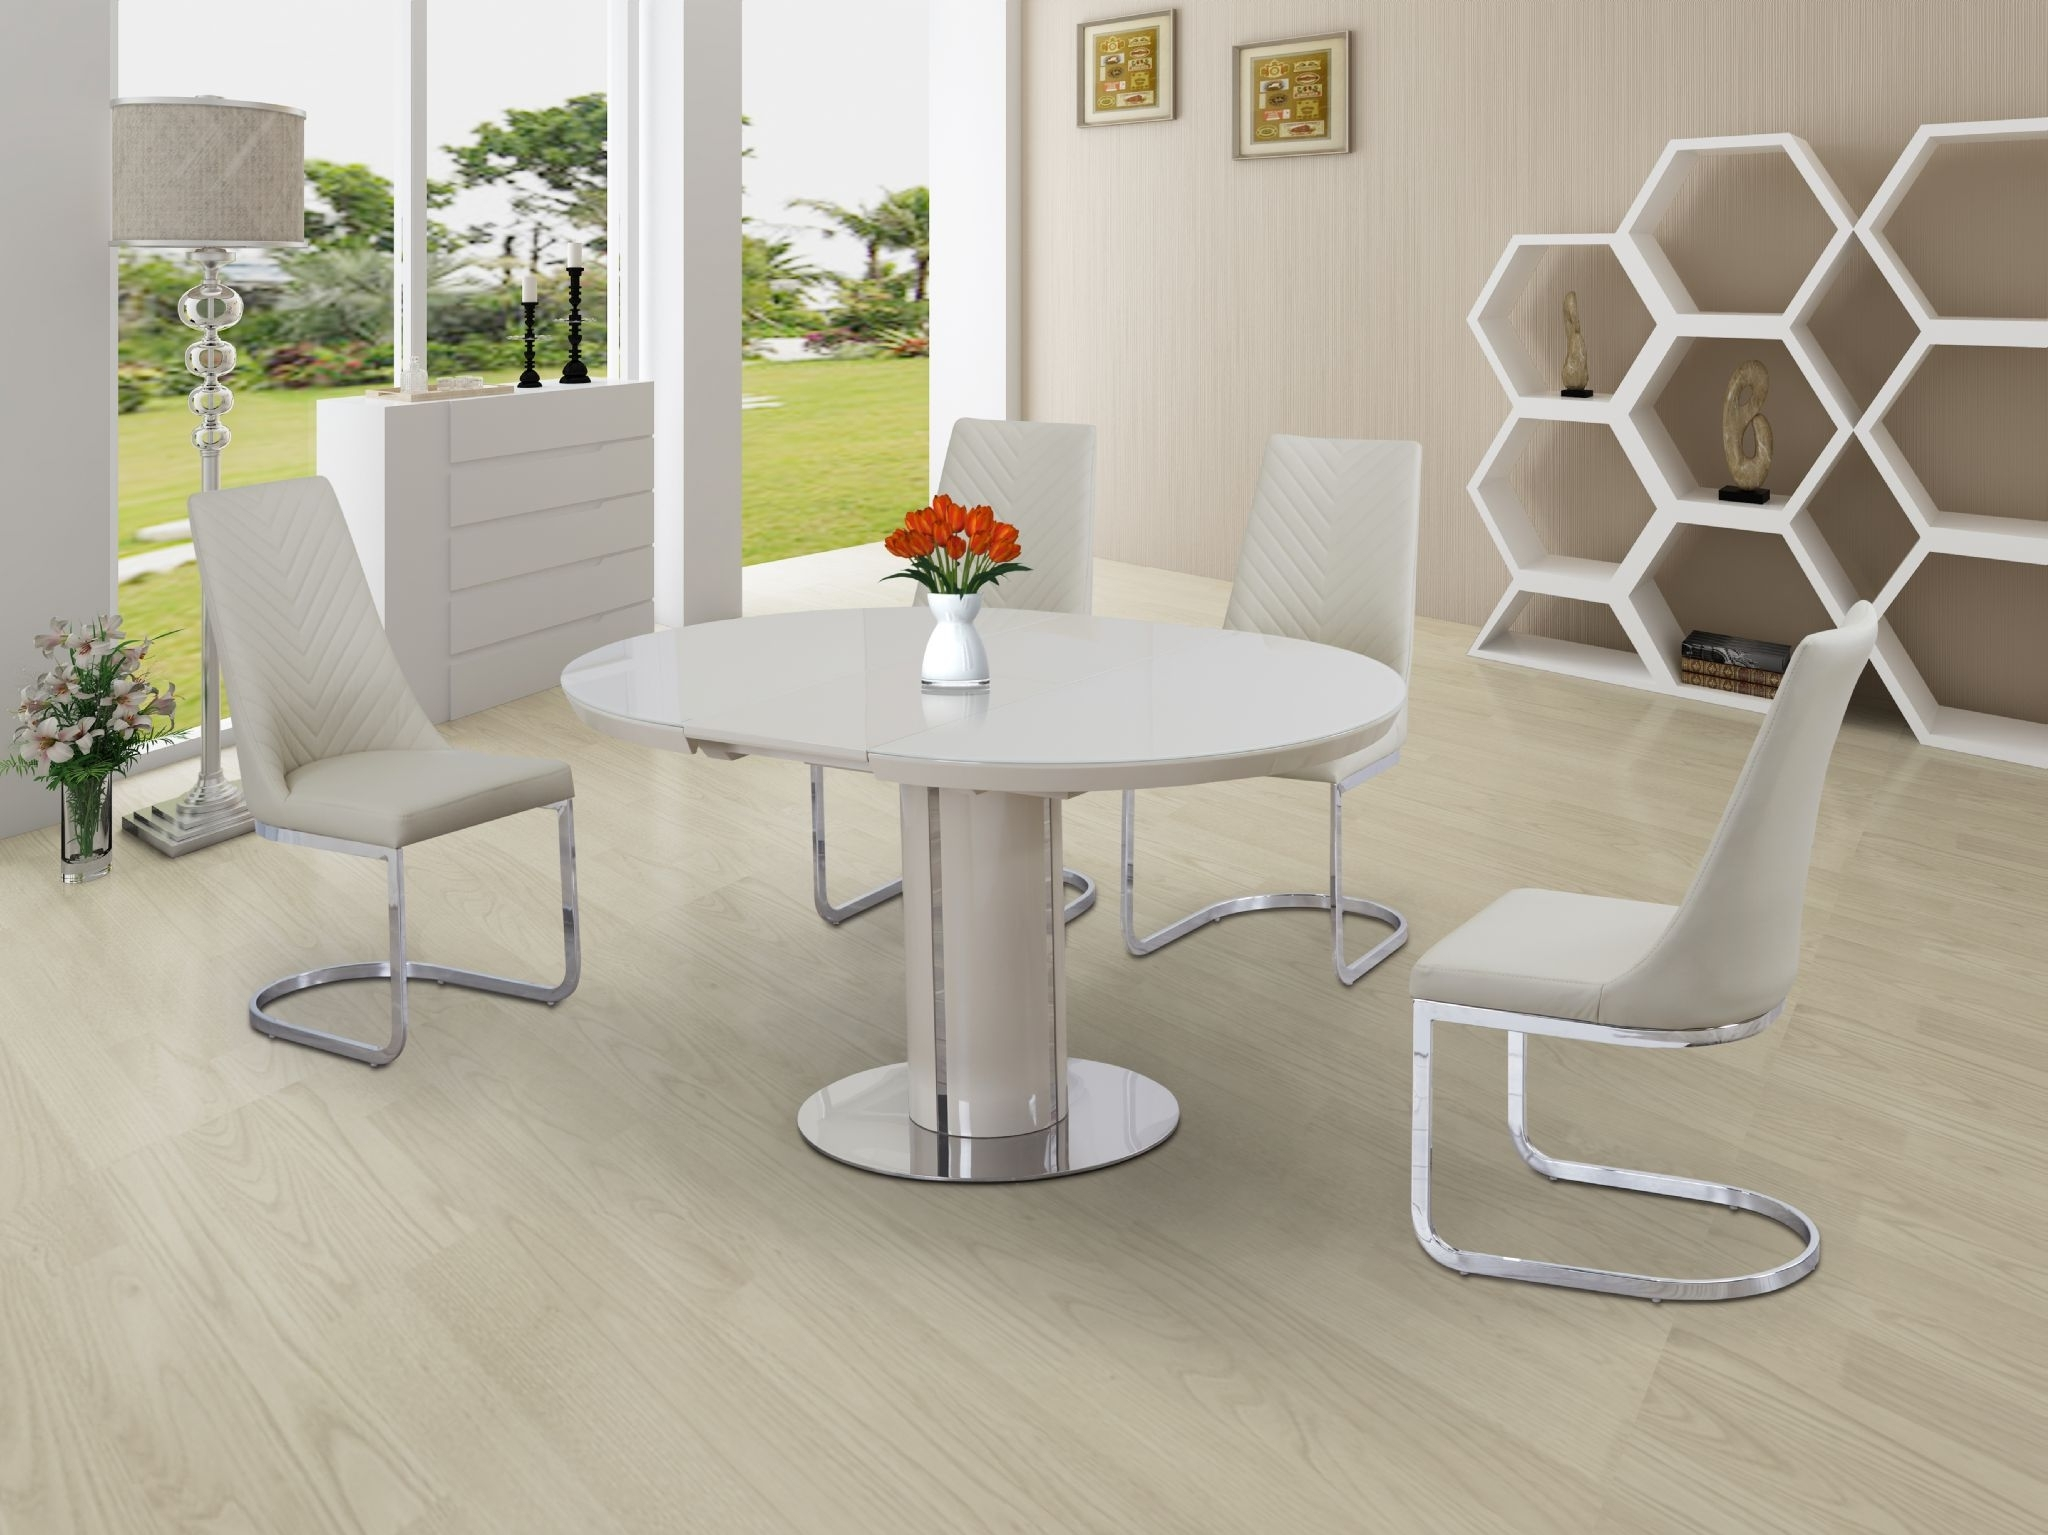 Newest Eclipse Round Oval Gloss & Glass Extending 110 To 145 Cm Dining Within Extended Round Dining Tables (View 8 of 25)